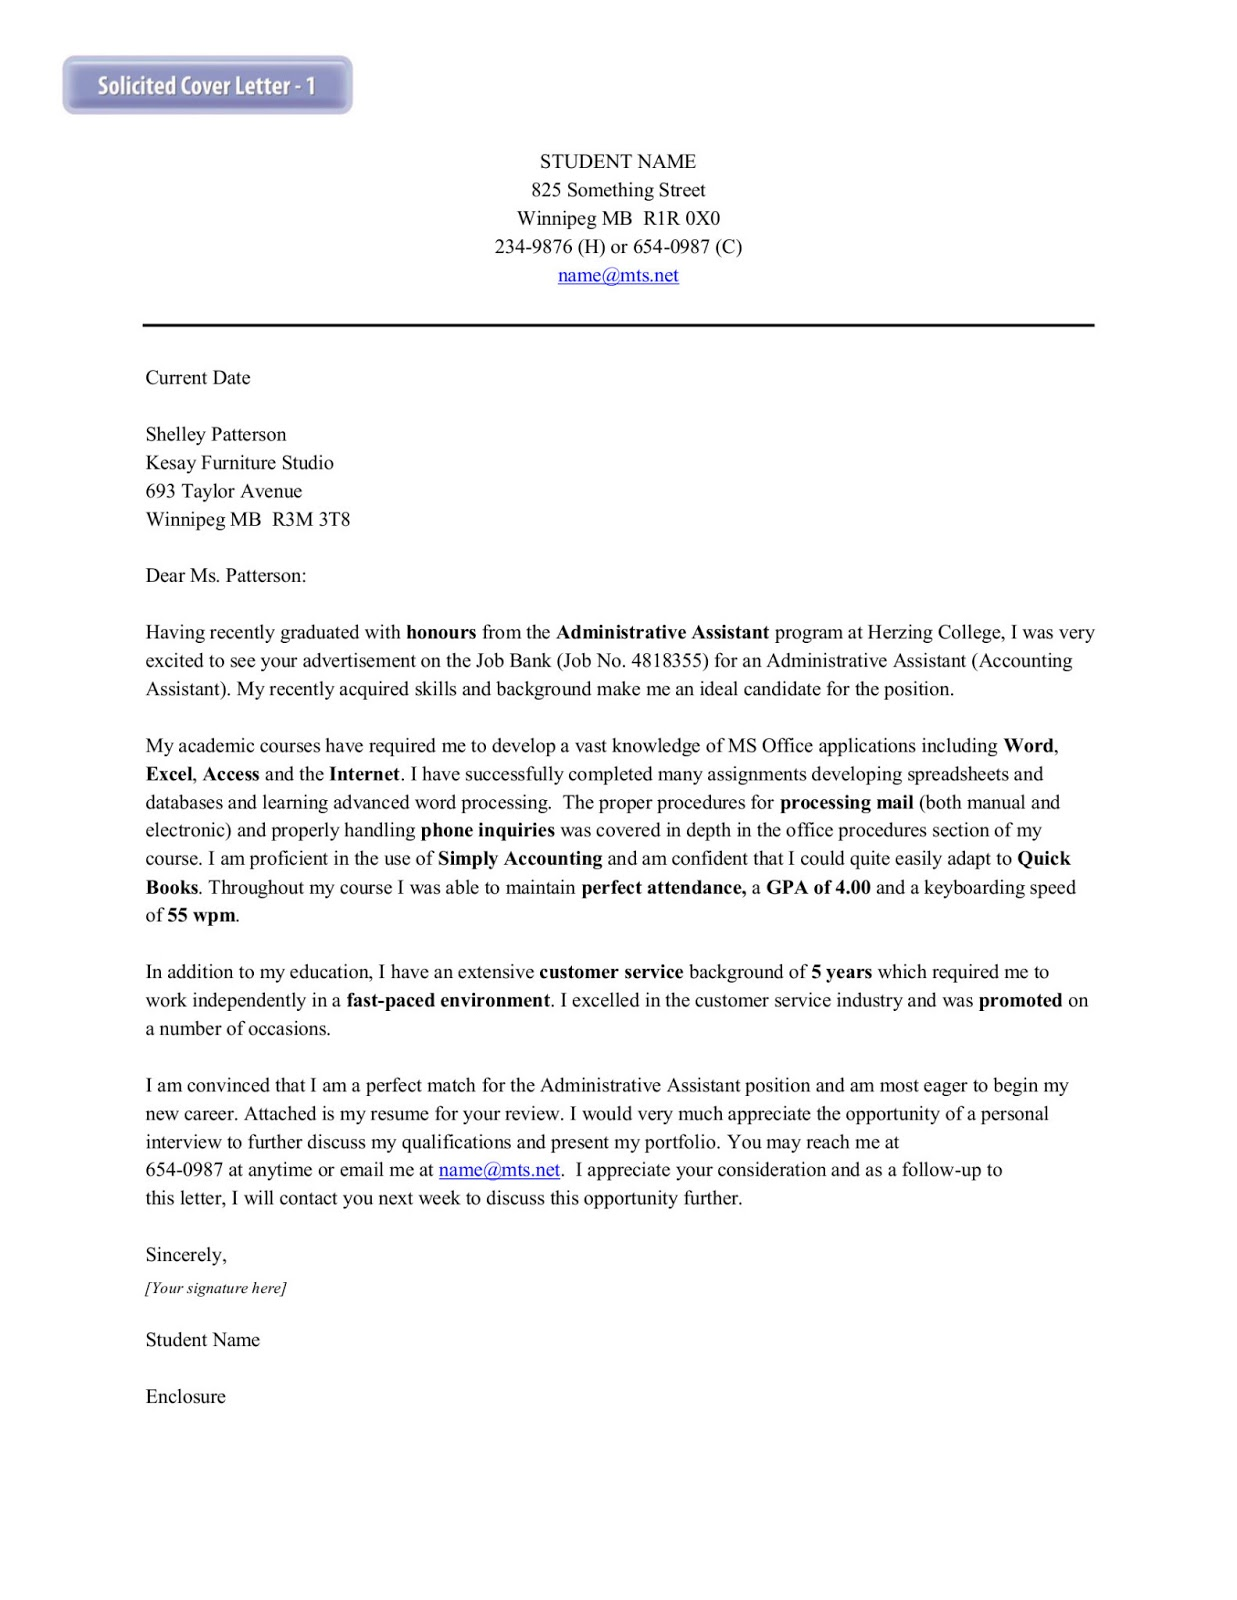 Solicited cover letter accounting August 15